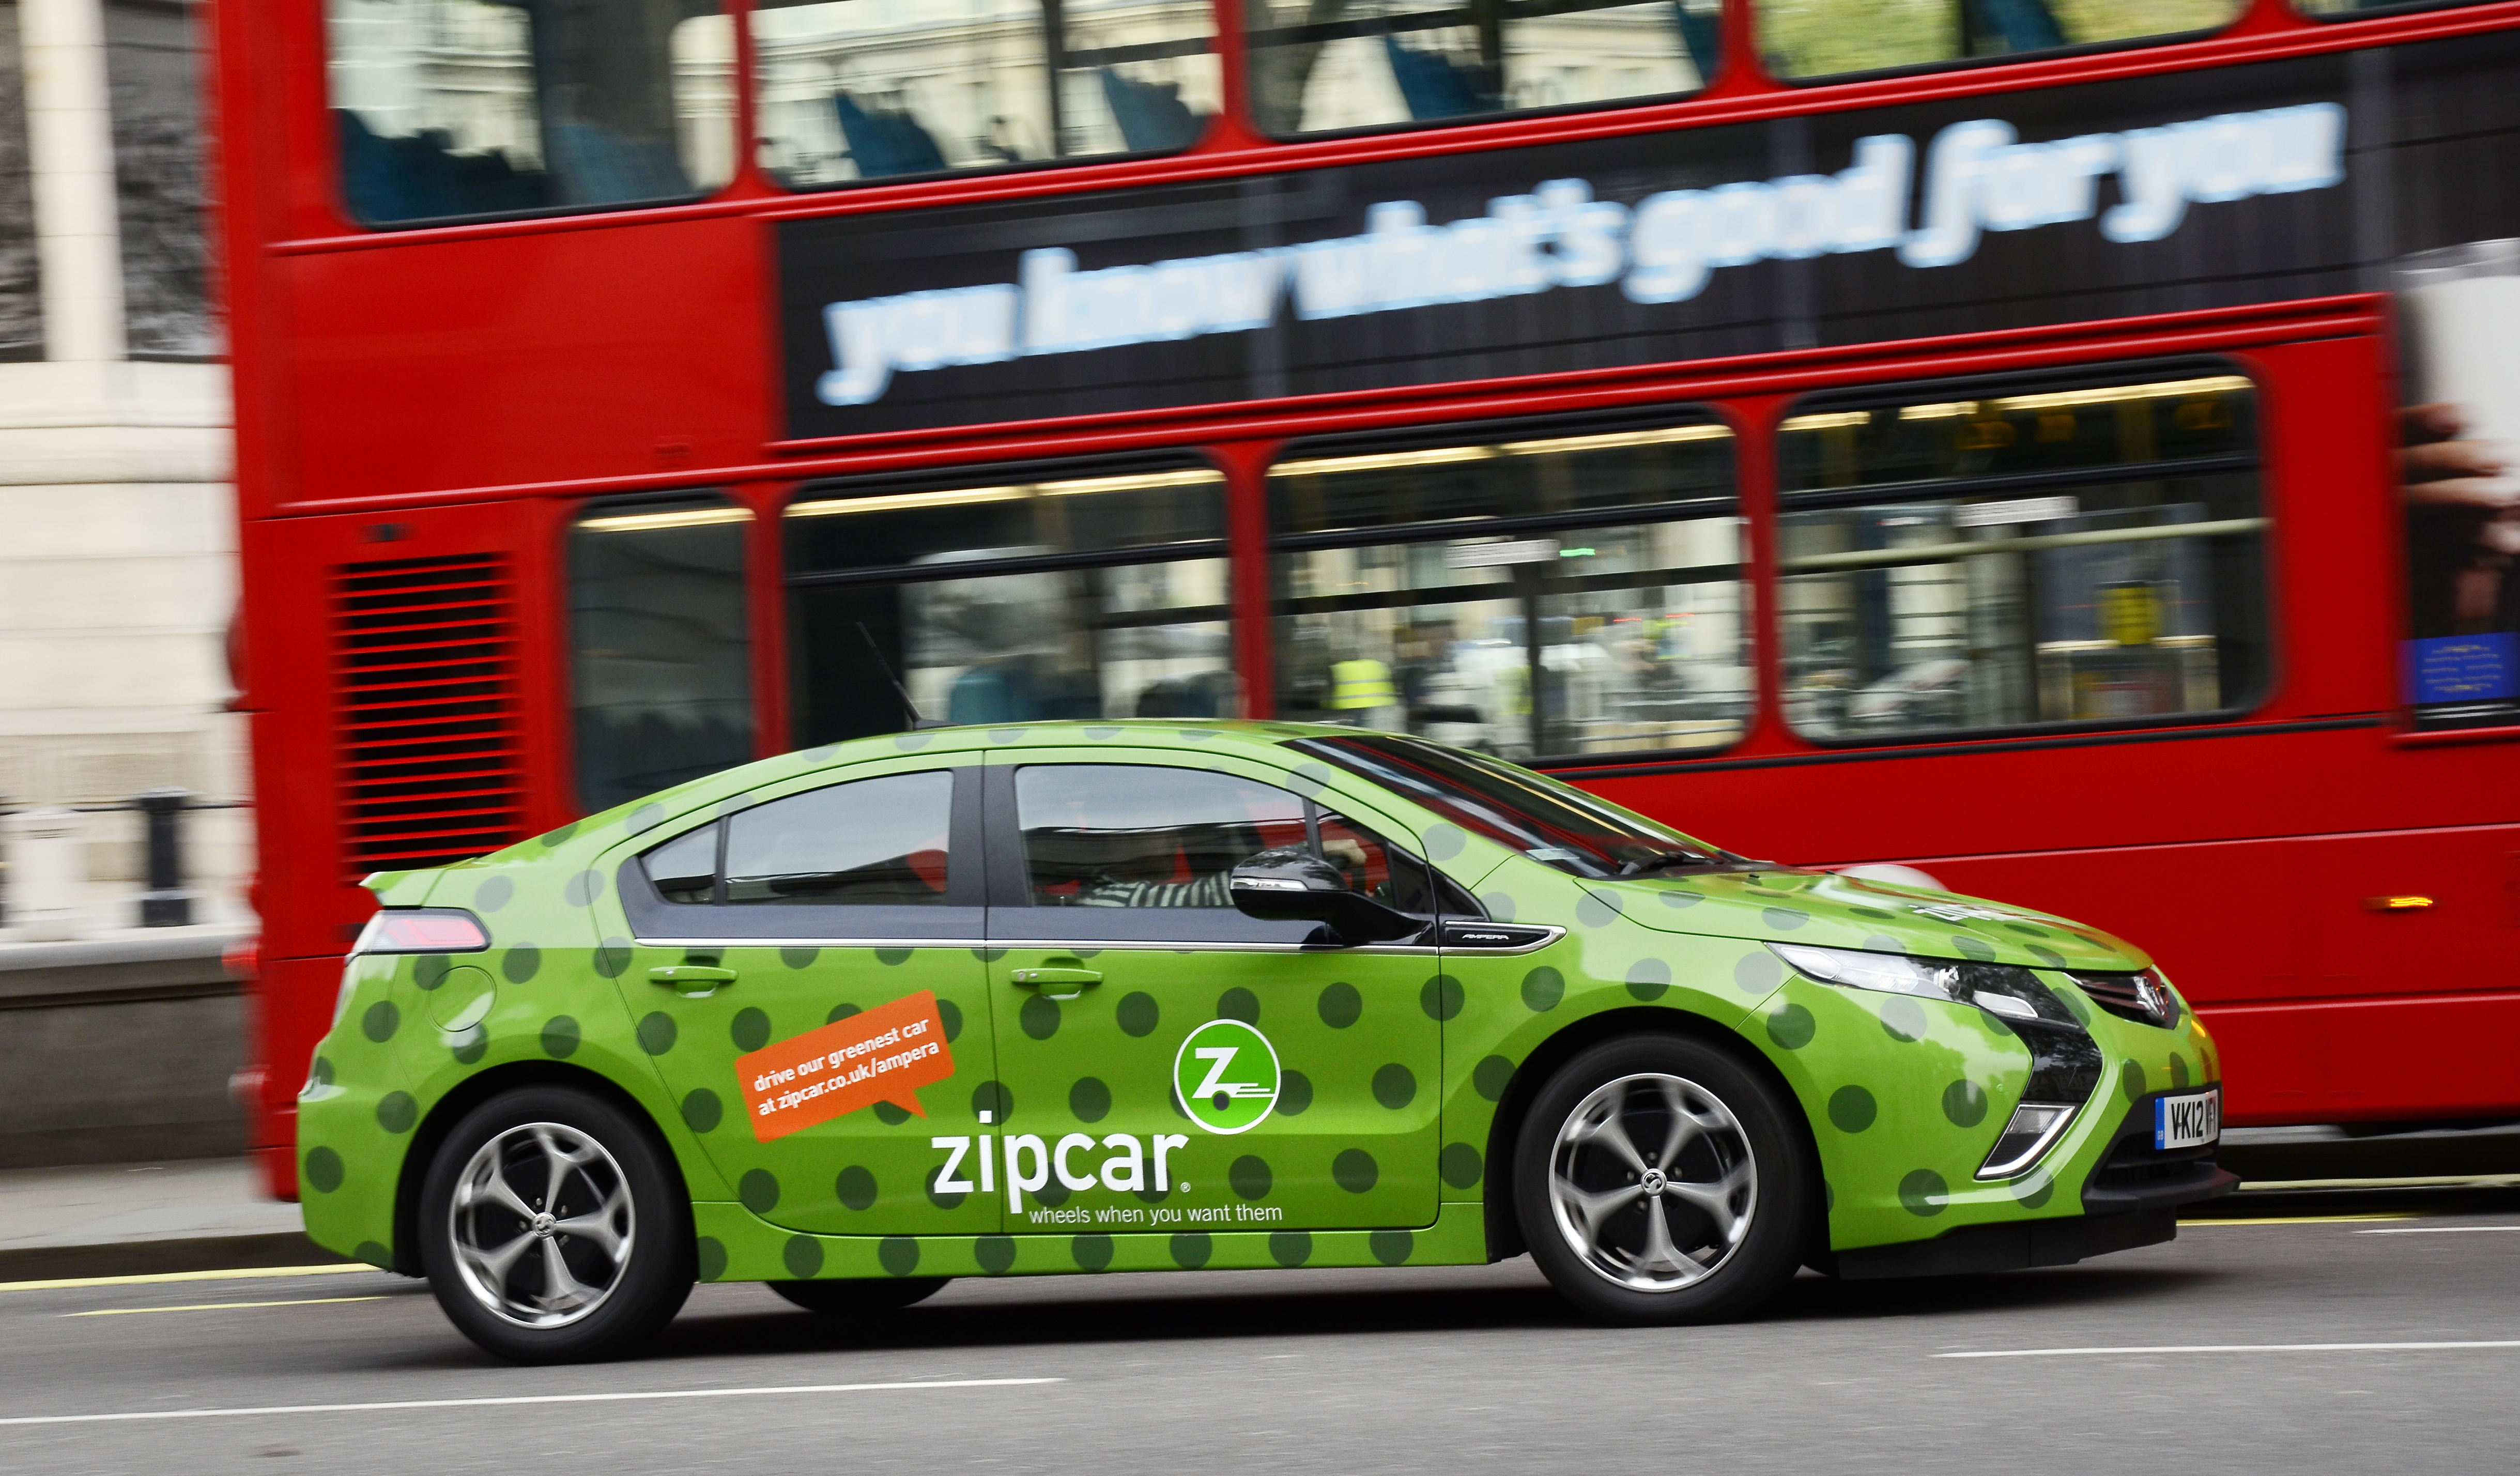 TfL and Greater London Authority plan for one million London car club members by 2025